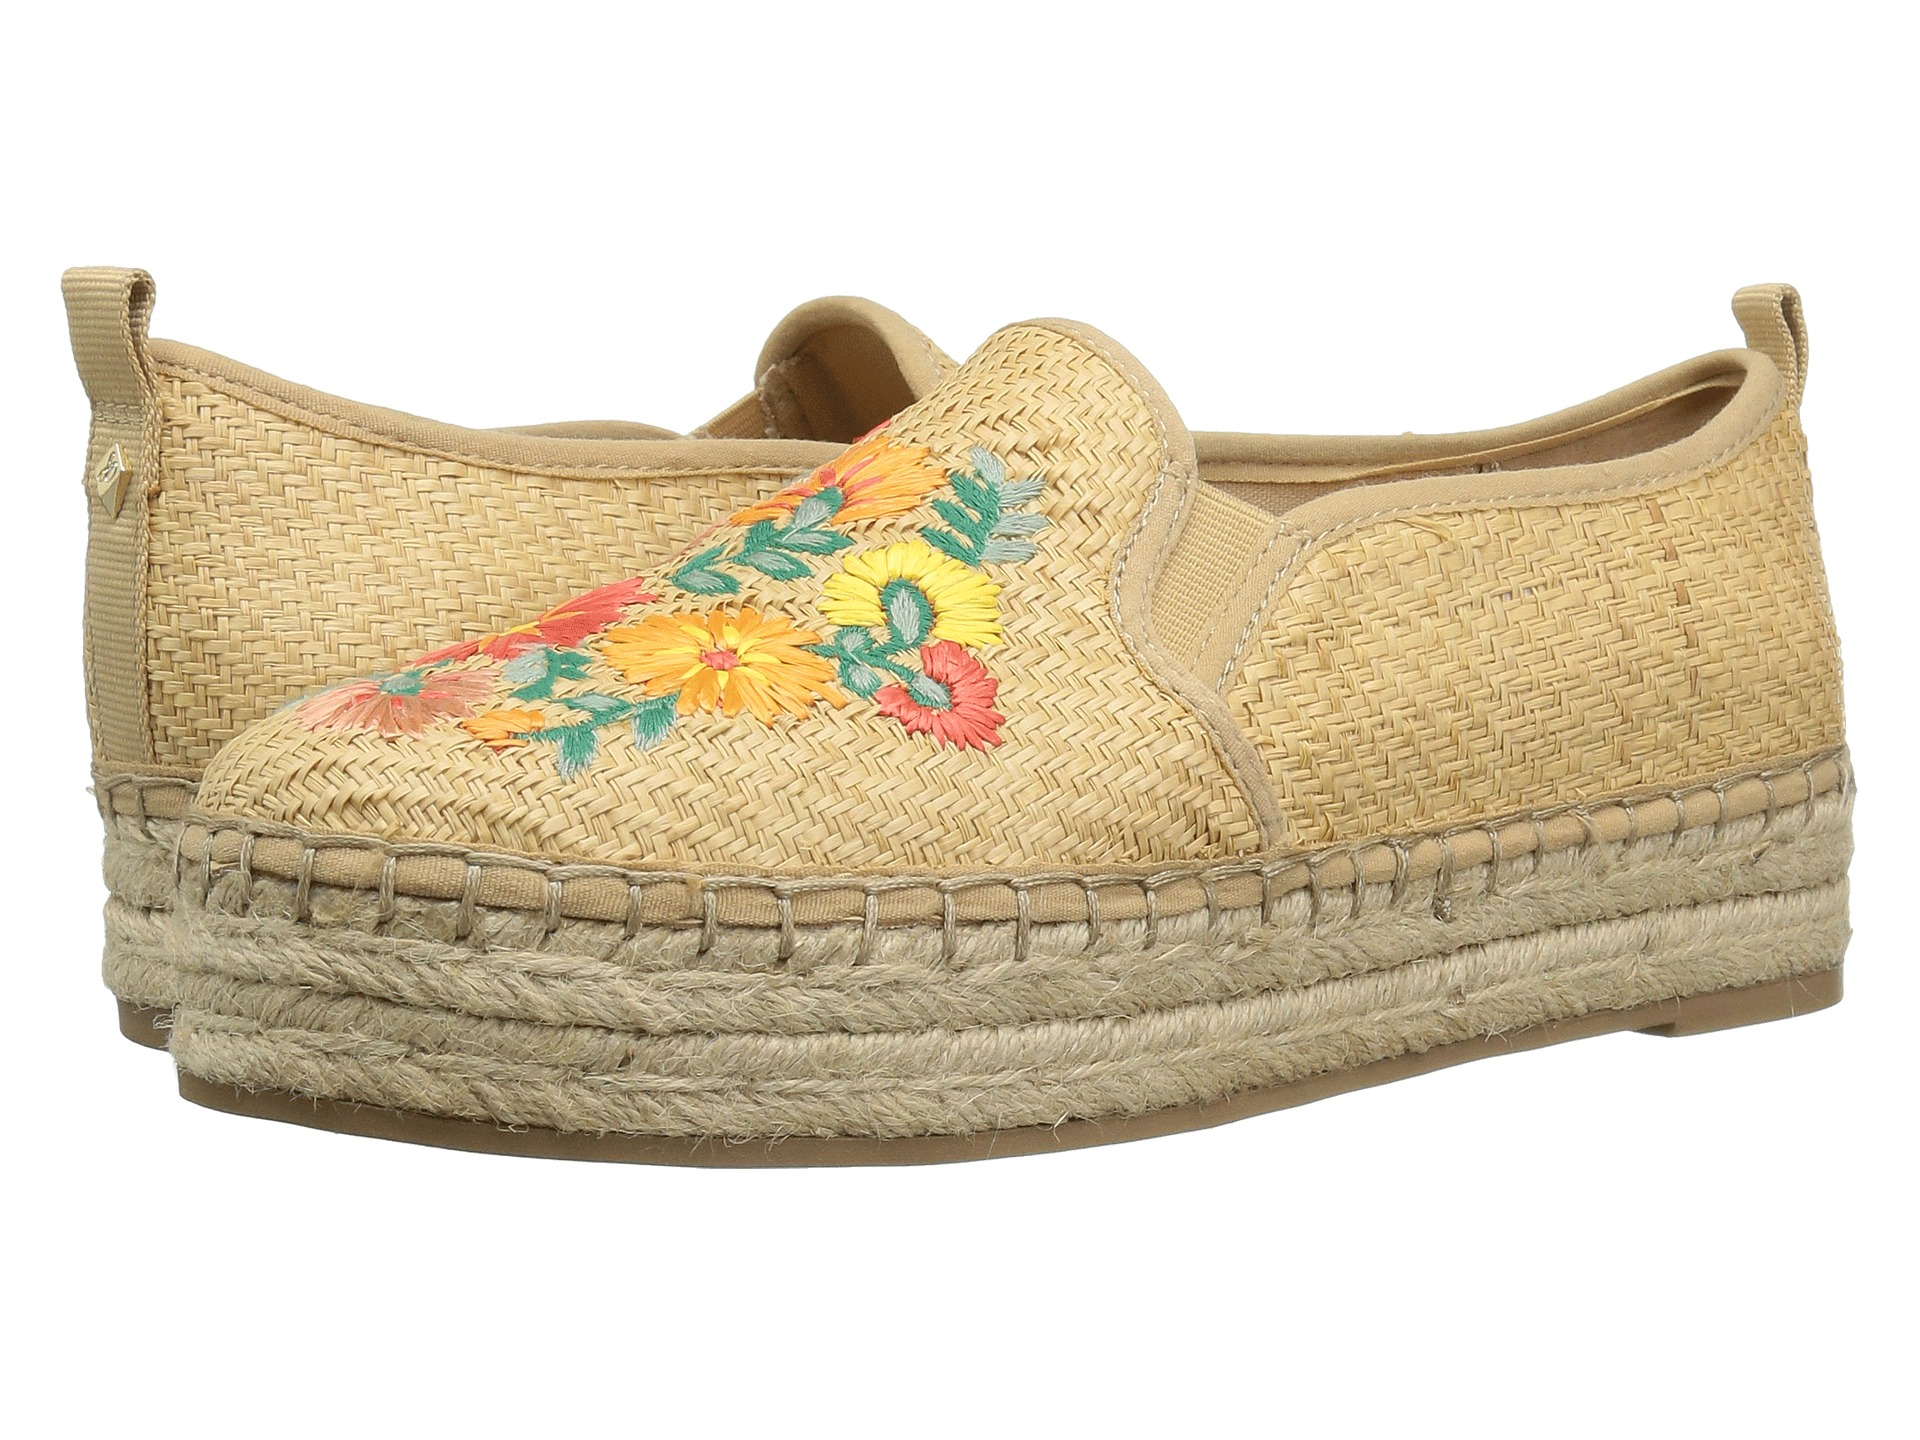 Basket Weaving With Raffia : Sam edelman carrin natural basket weave raffia bright